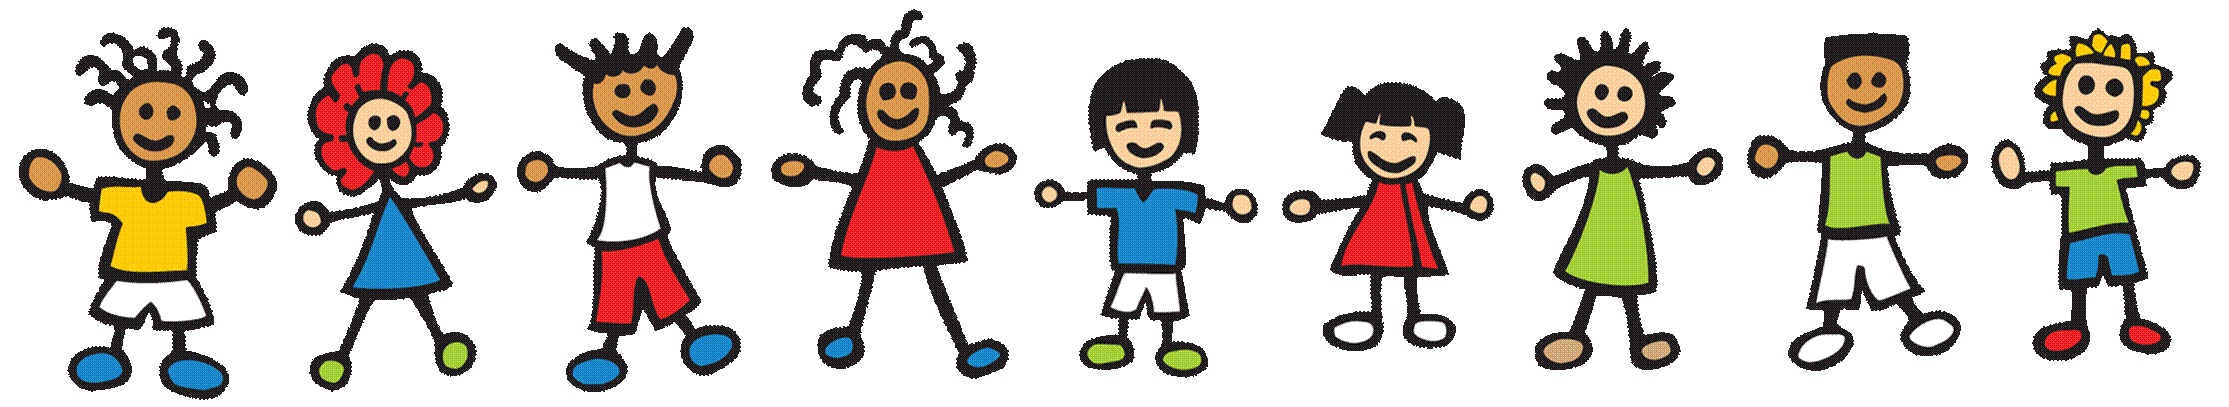 preschool-children-playing-clip-art